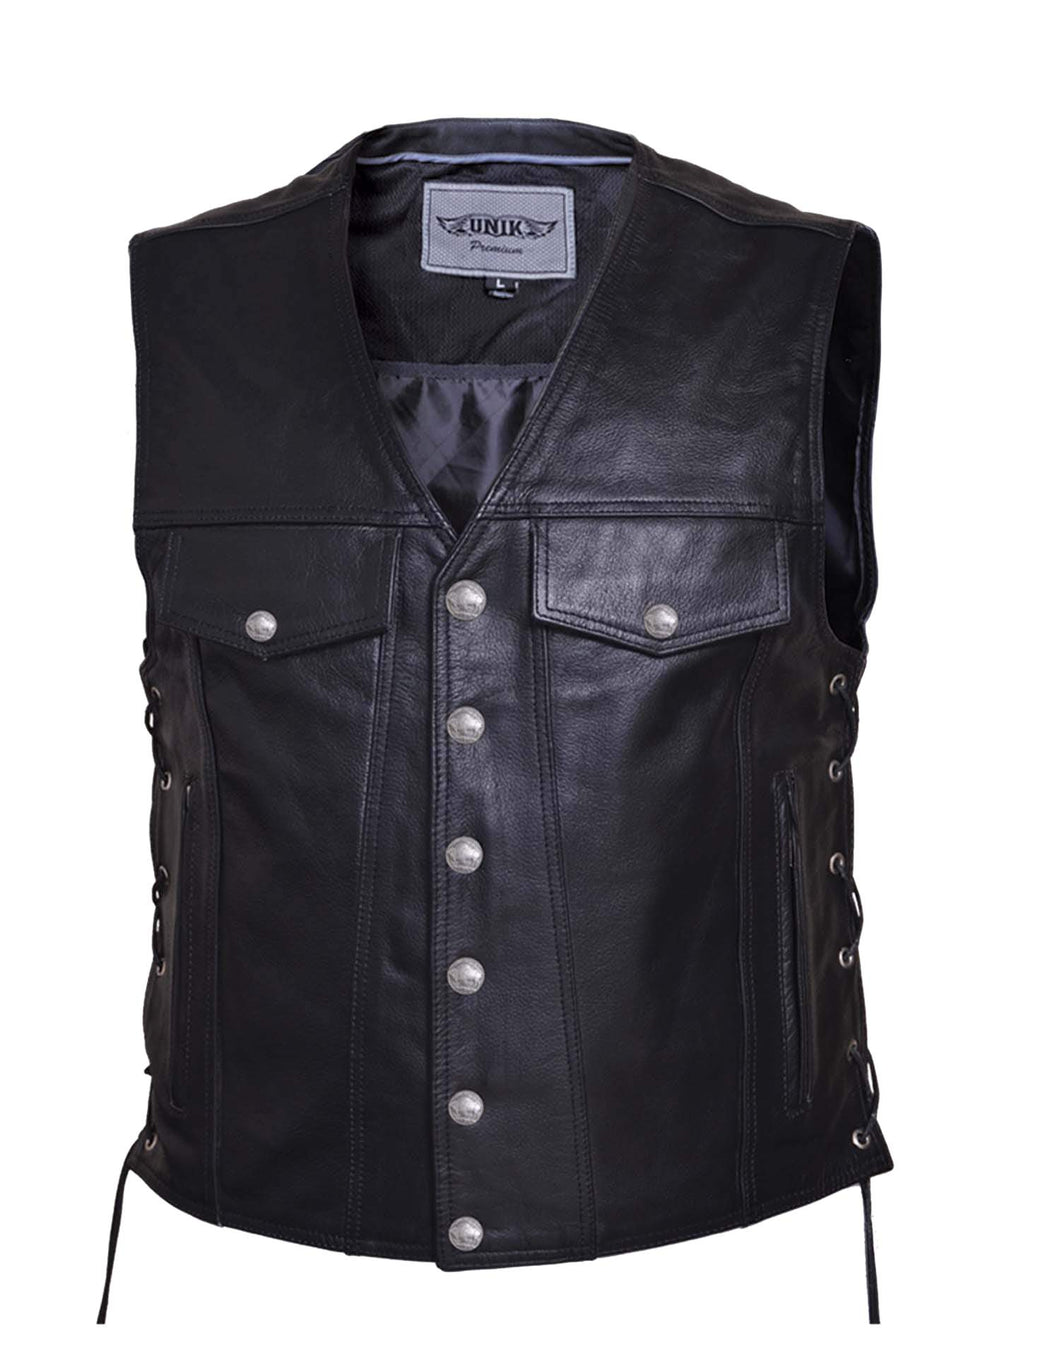 UNIK Men's Premium Leather Motorcycle Vest - Ghost Rider Leather